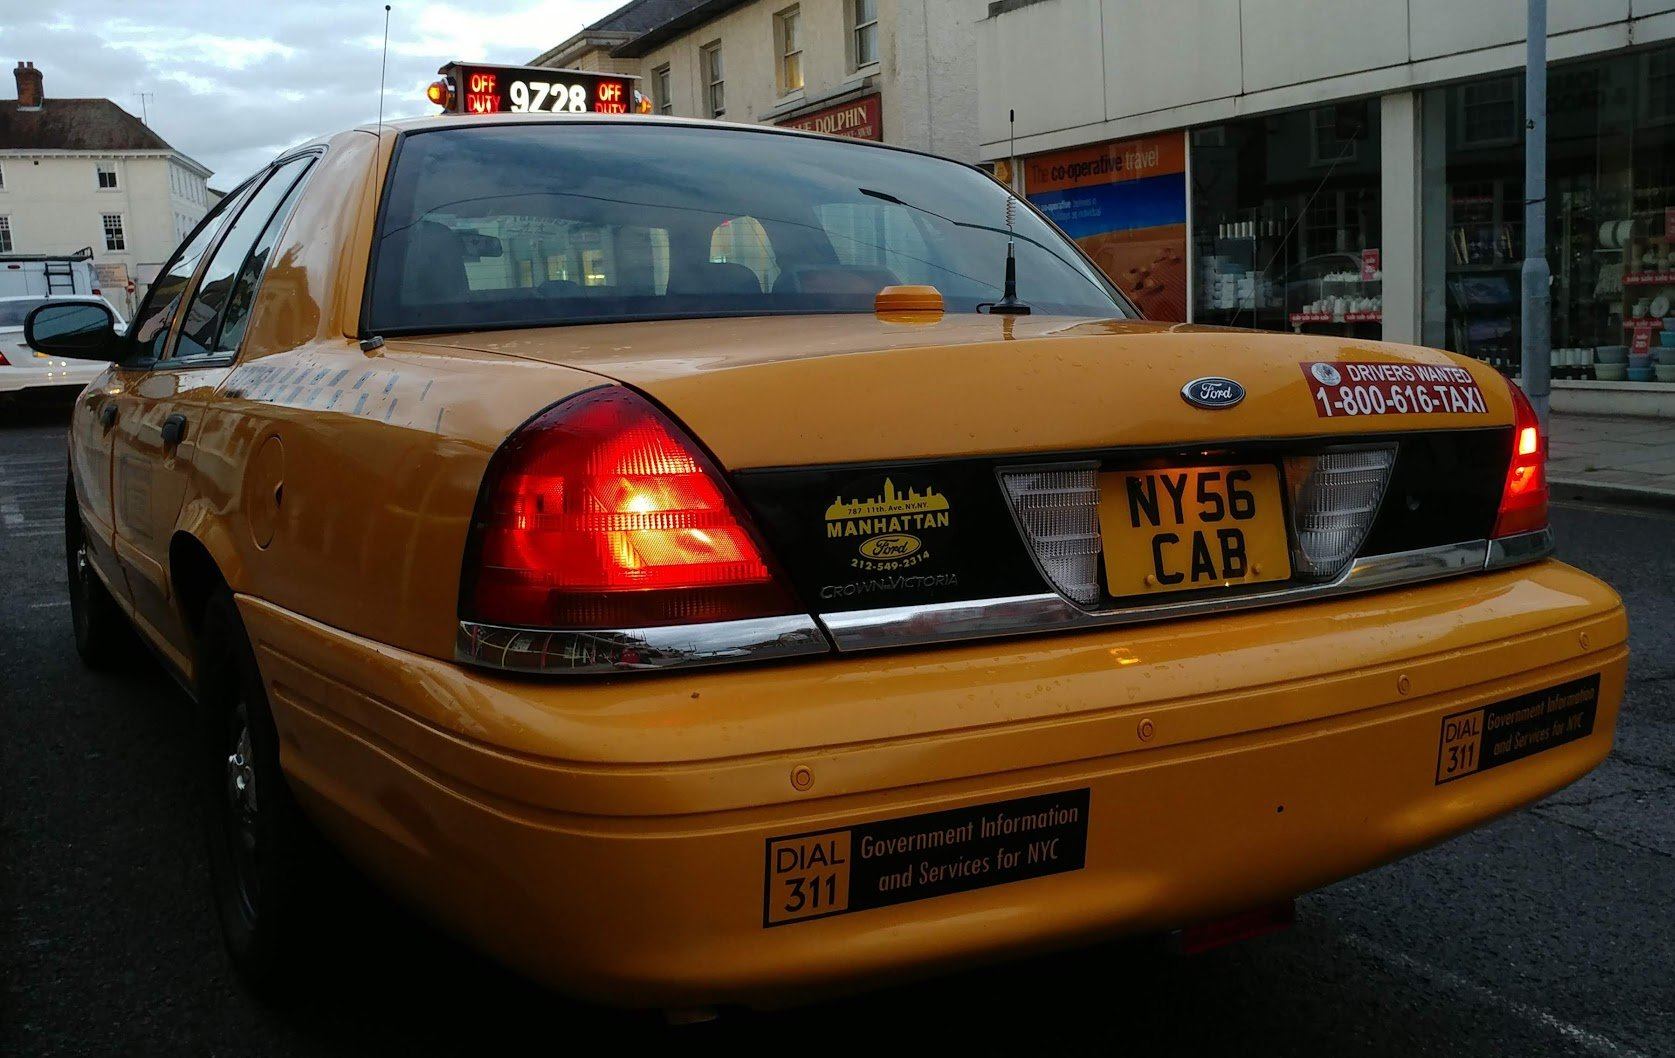 2007 Ford Crown Victoria New York taxi cab For Sale (picture 2 of 6)